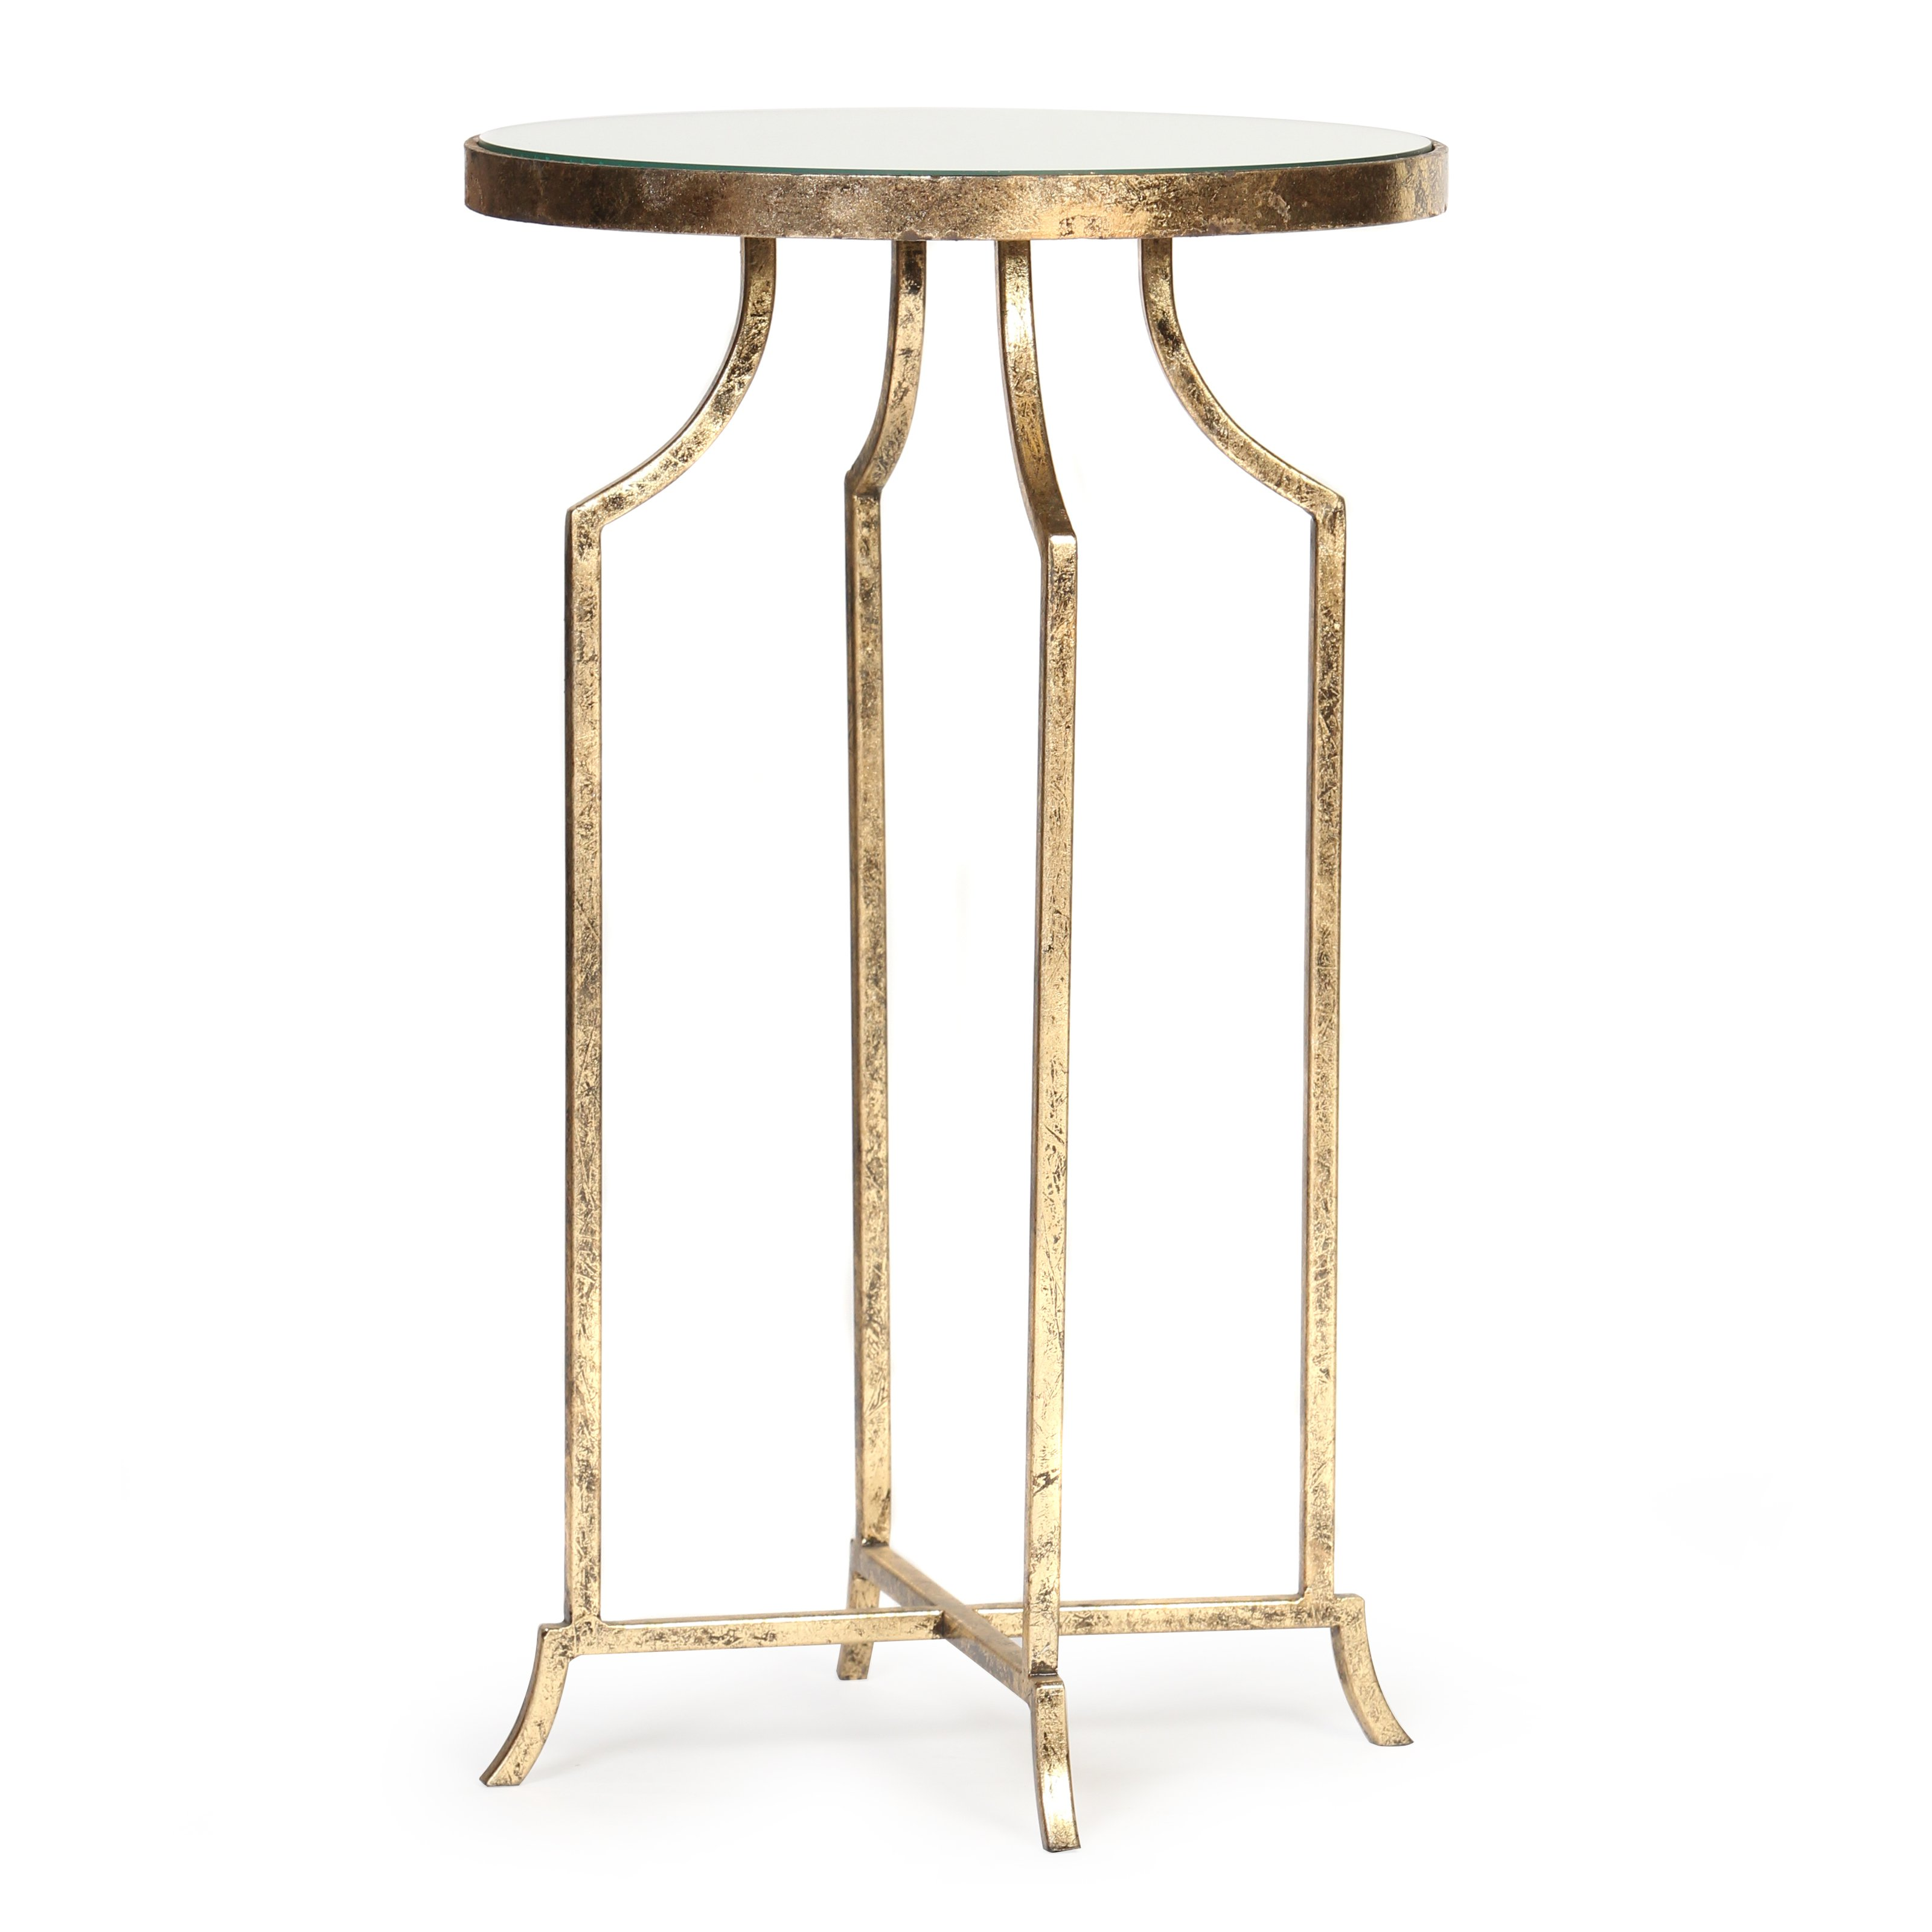 knox and harrison round accent table gold leaf master target wood side fur furniture unfinished metal storage cream colored tablecloth small slim bedside lounge room runner rugs